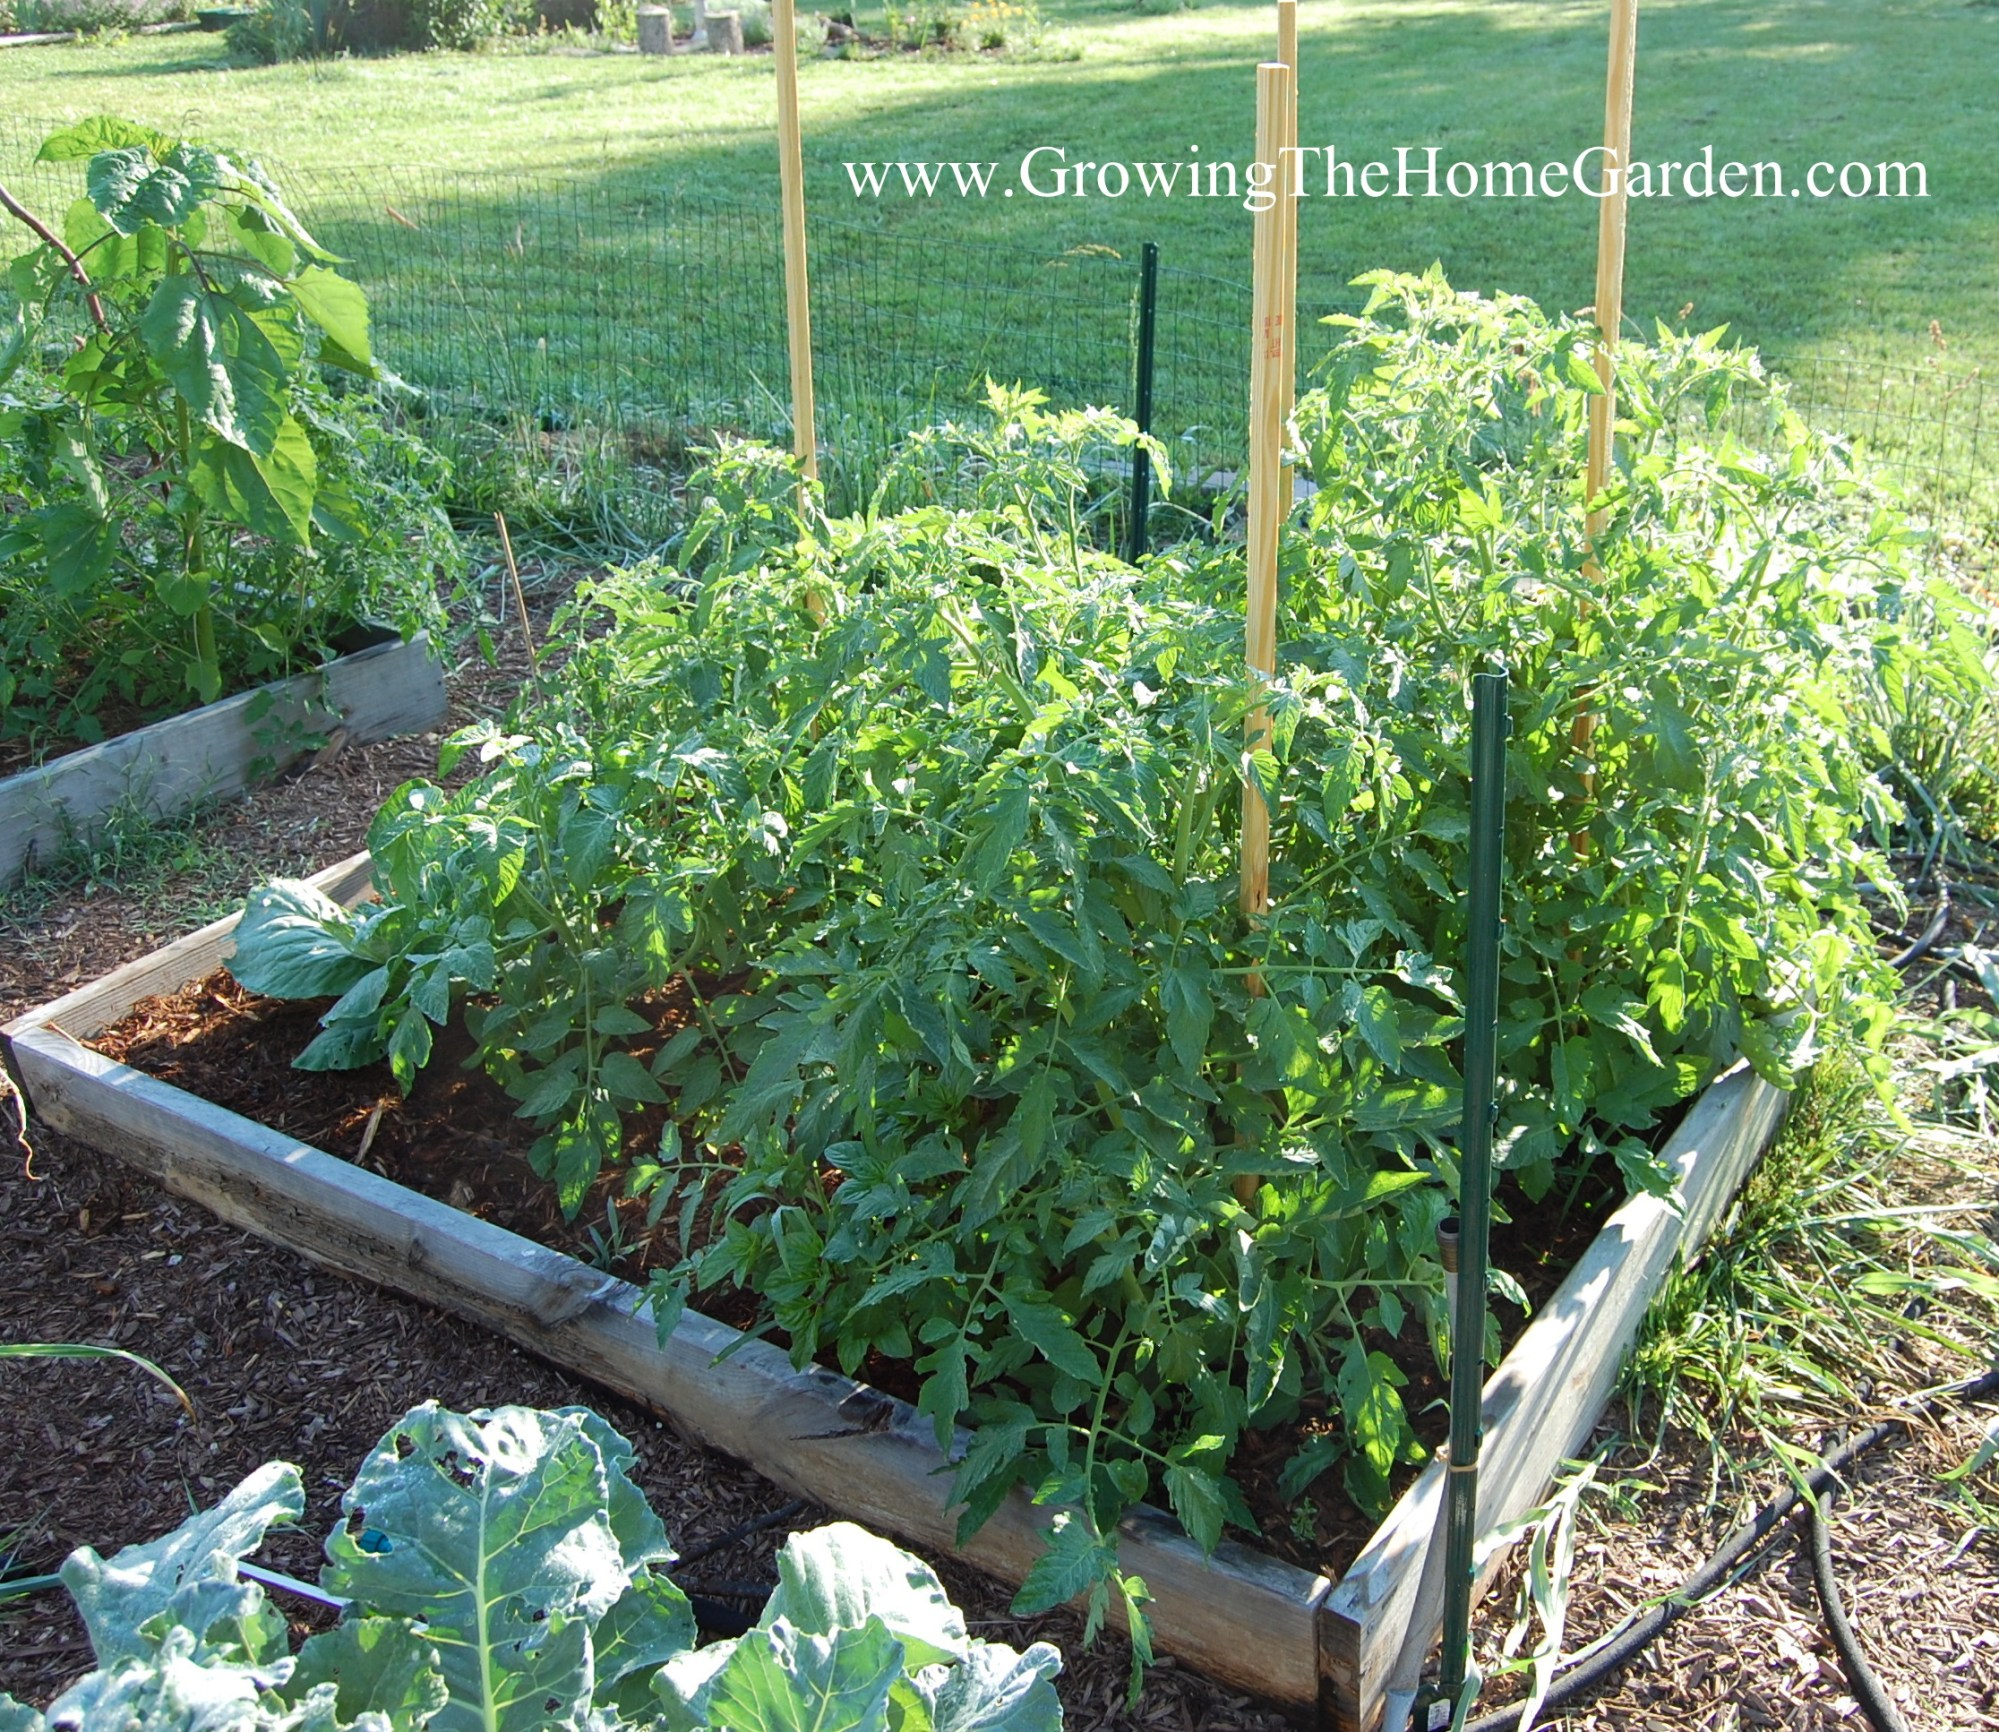 hight resolution of 11 tips to consider when designing a raised bed vegetable garden layout